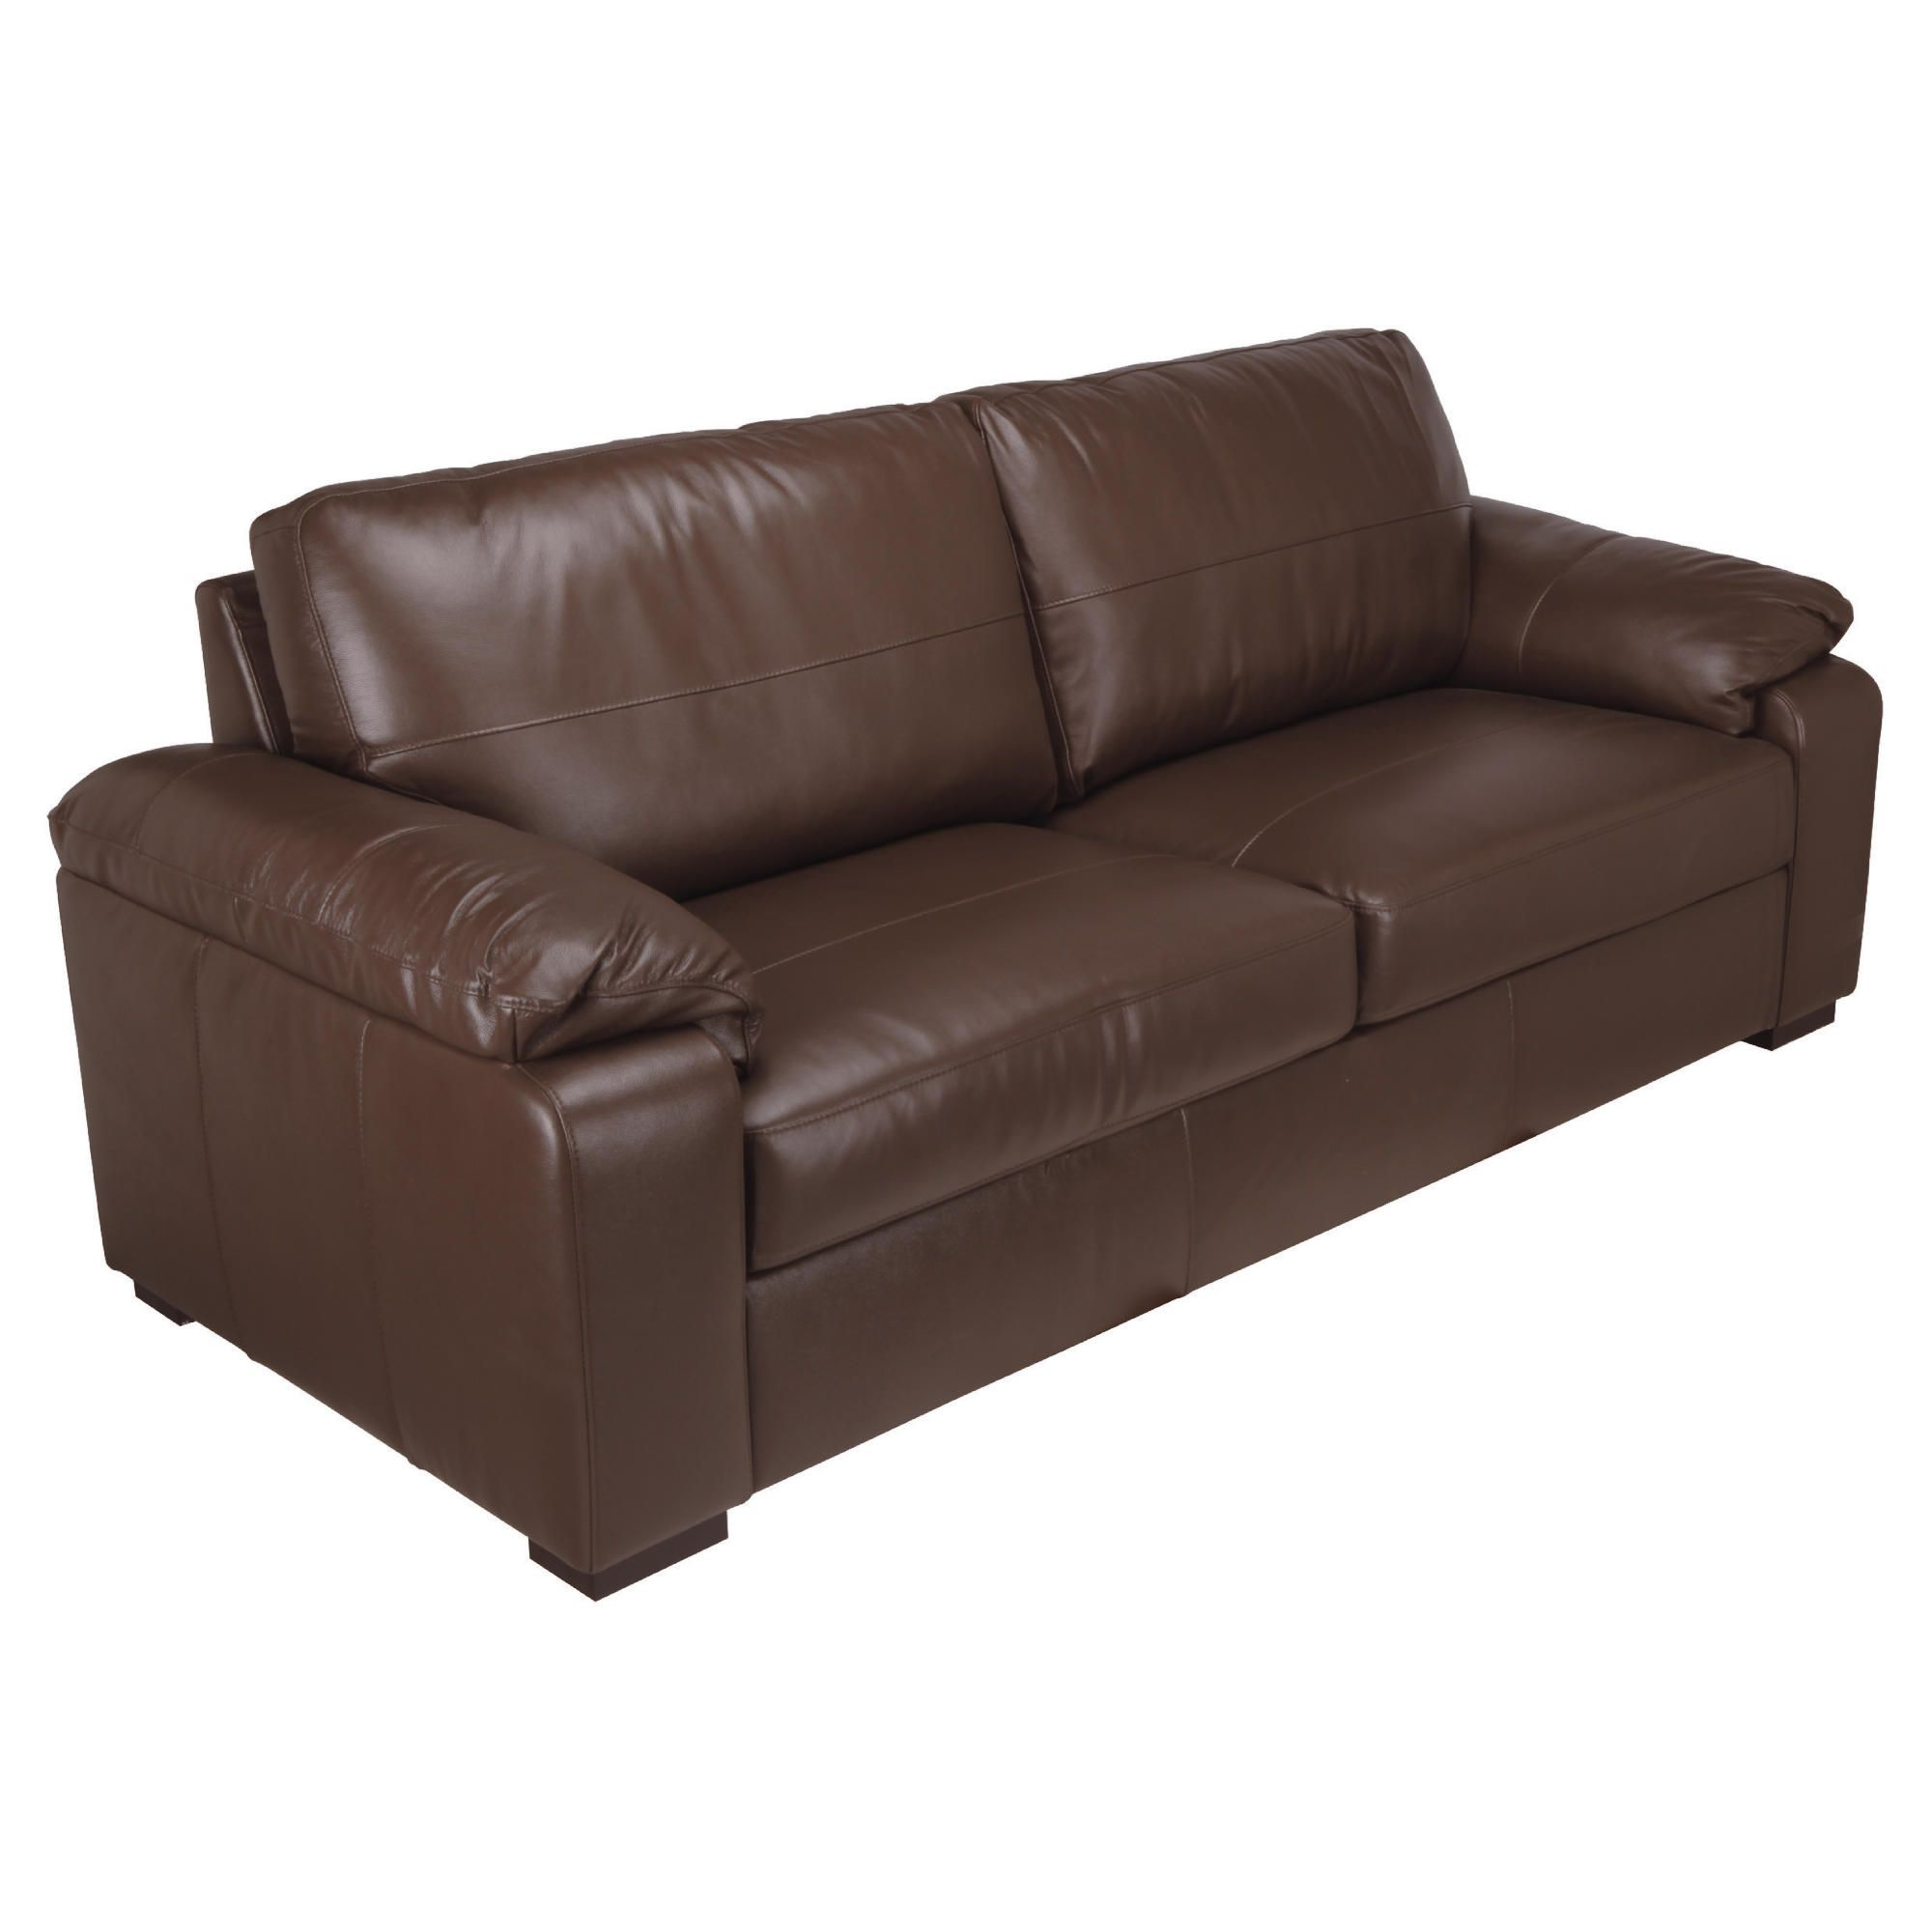 Tesco Furniture Sofas Hereo Sofa